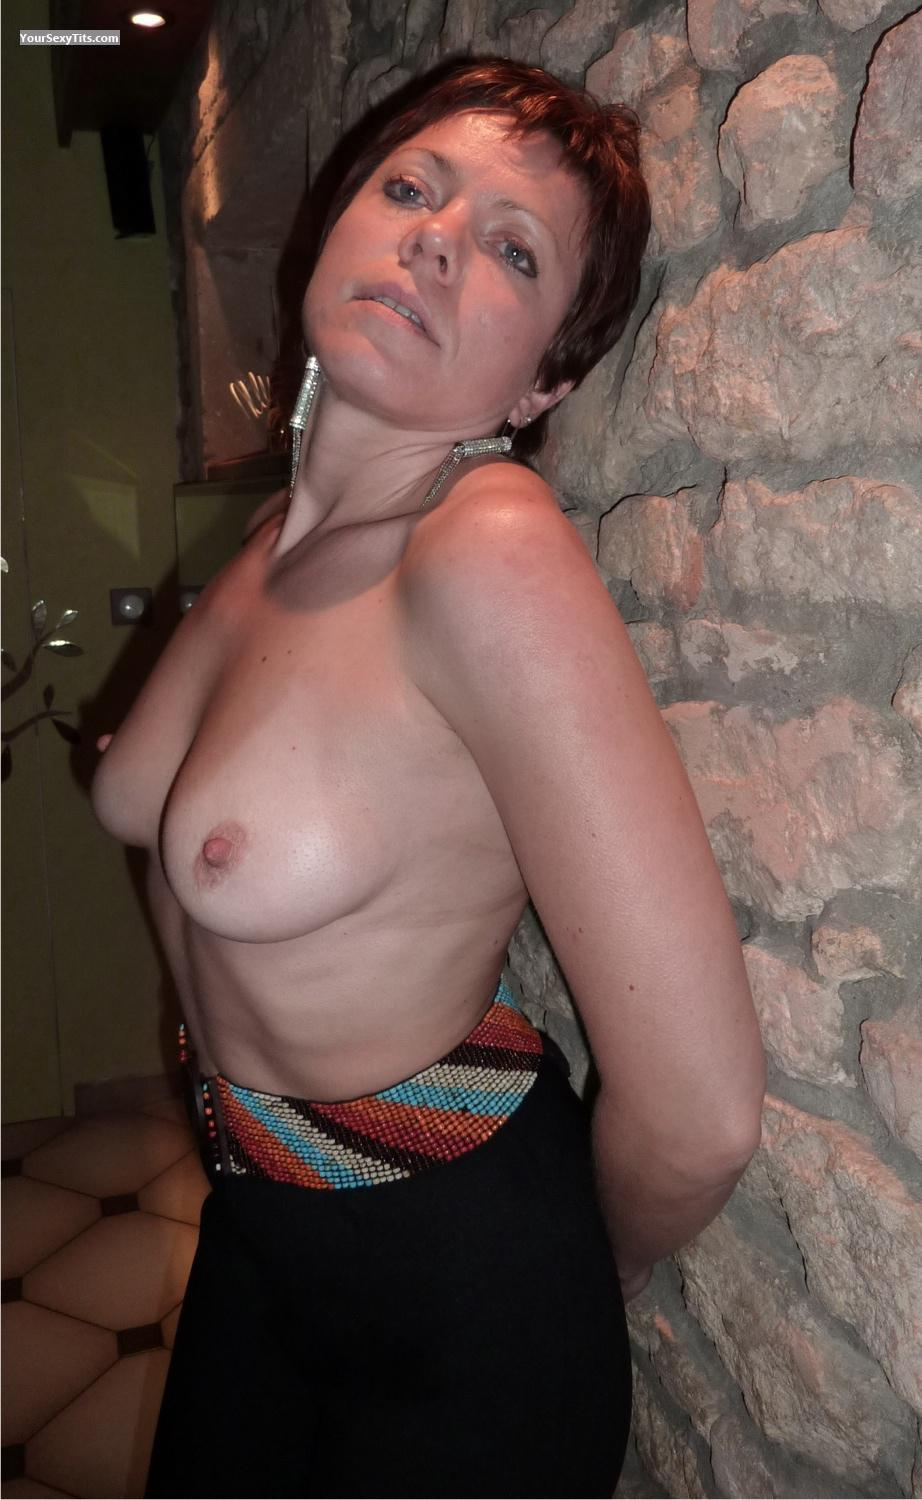 Medium Tits Topless LittleBabs